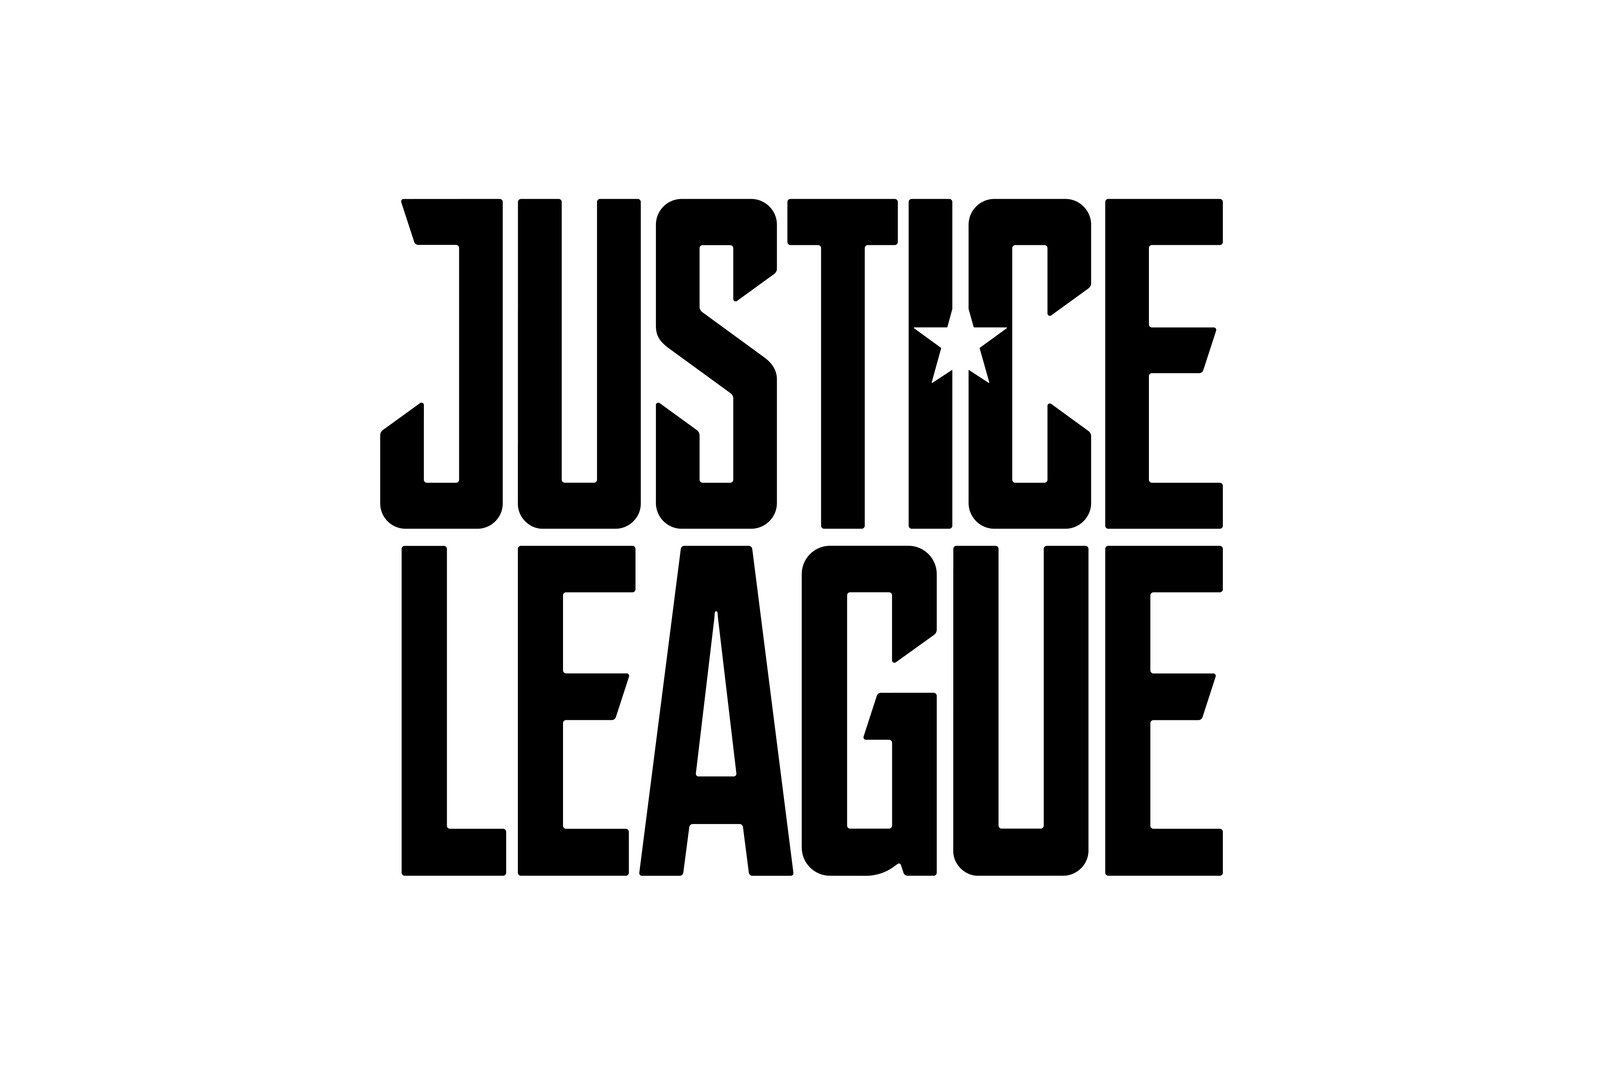 Justice League logo